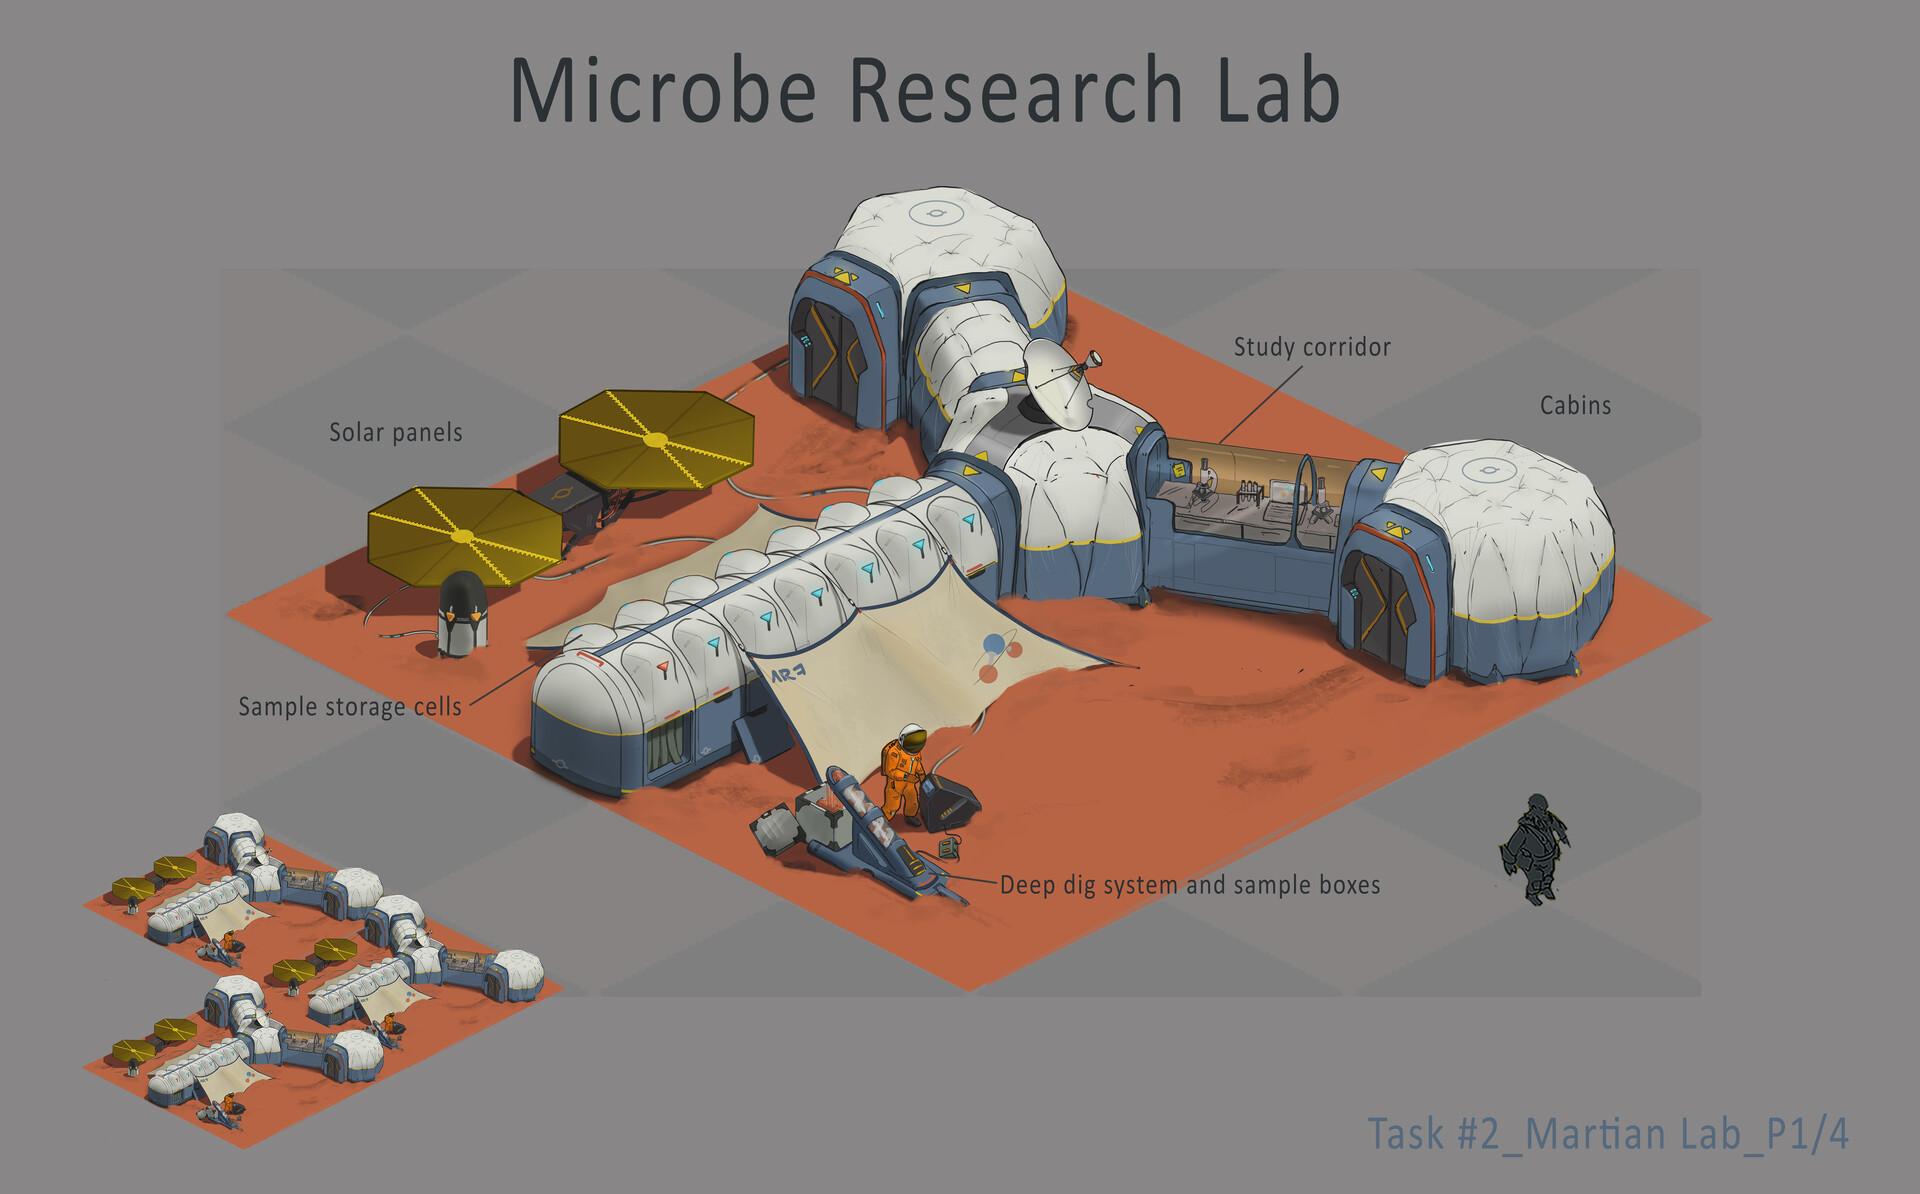 arash-razavi-task2-martian-lab-p1